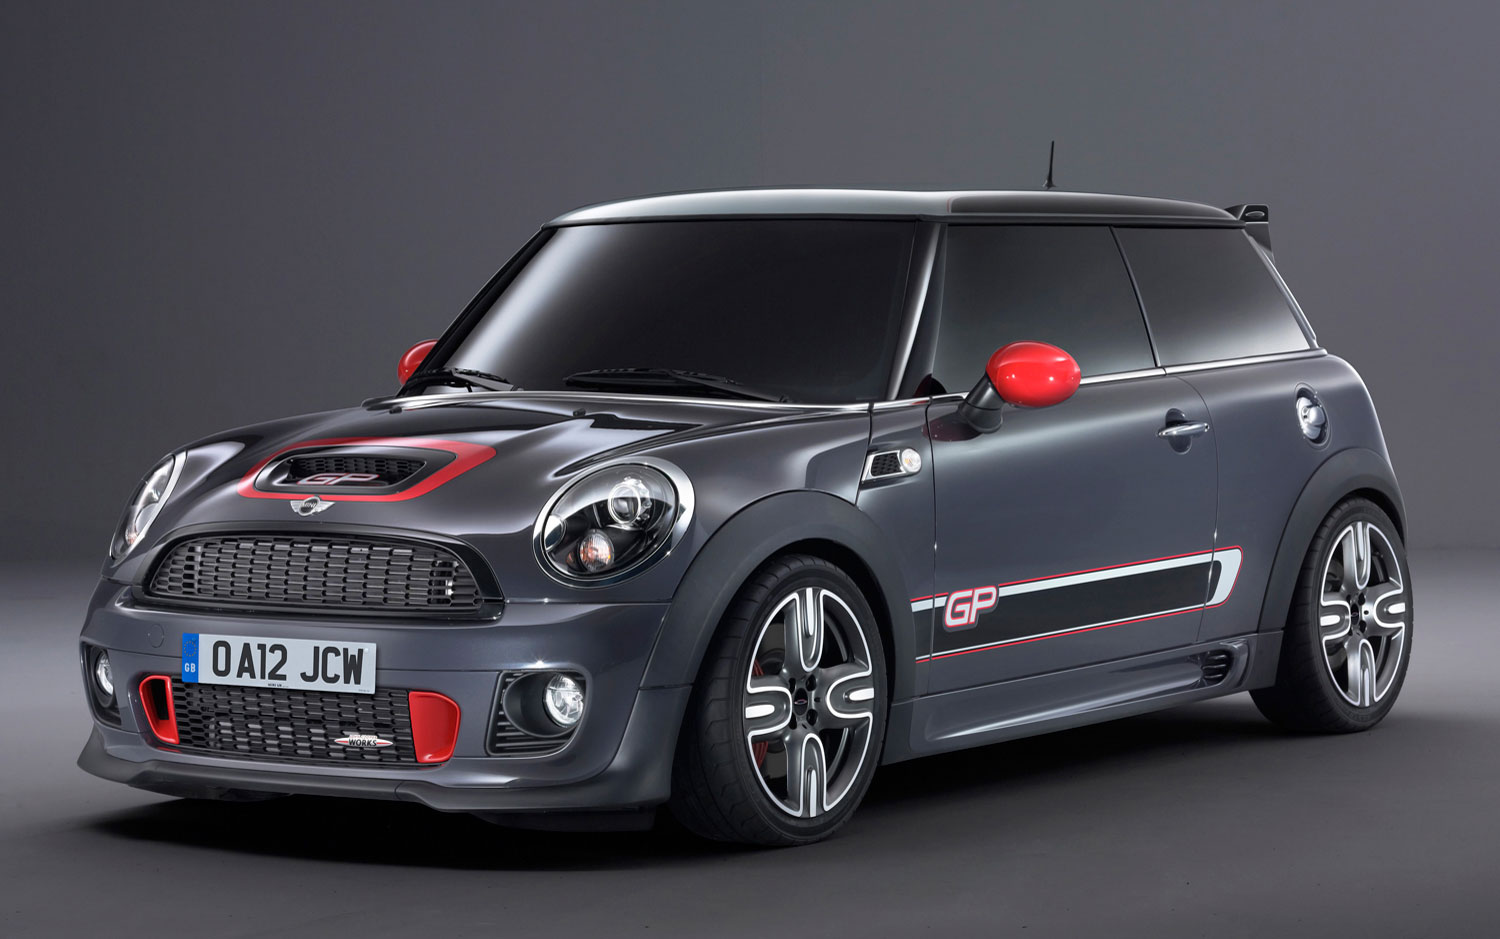 cars model 2013 2014 2013 mini john cooper works gp concept. Black Bedroom Furniture Sets. Home Design Ideas